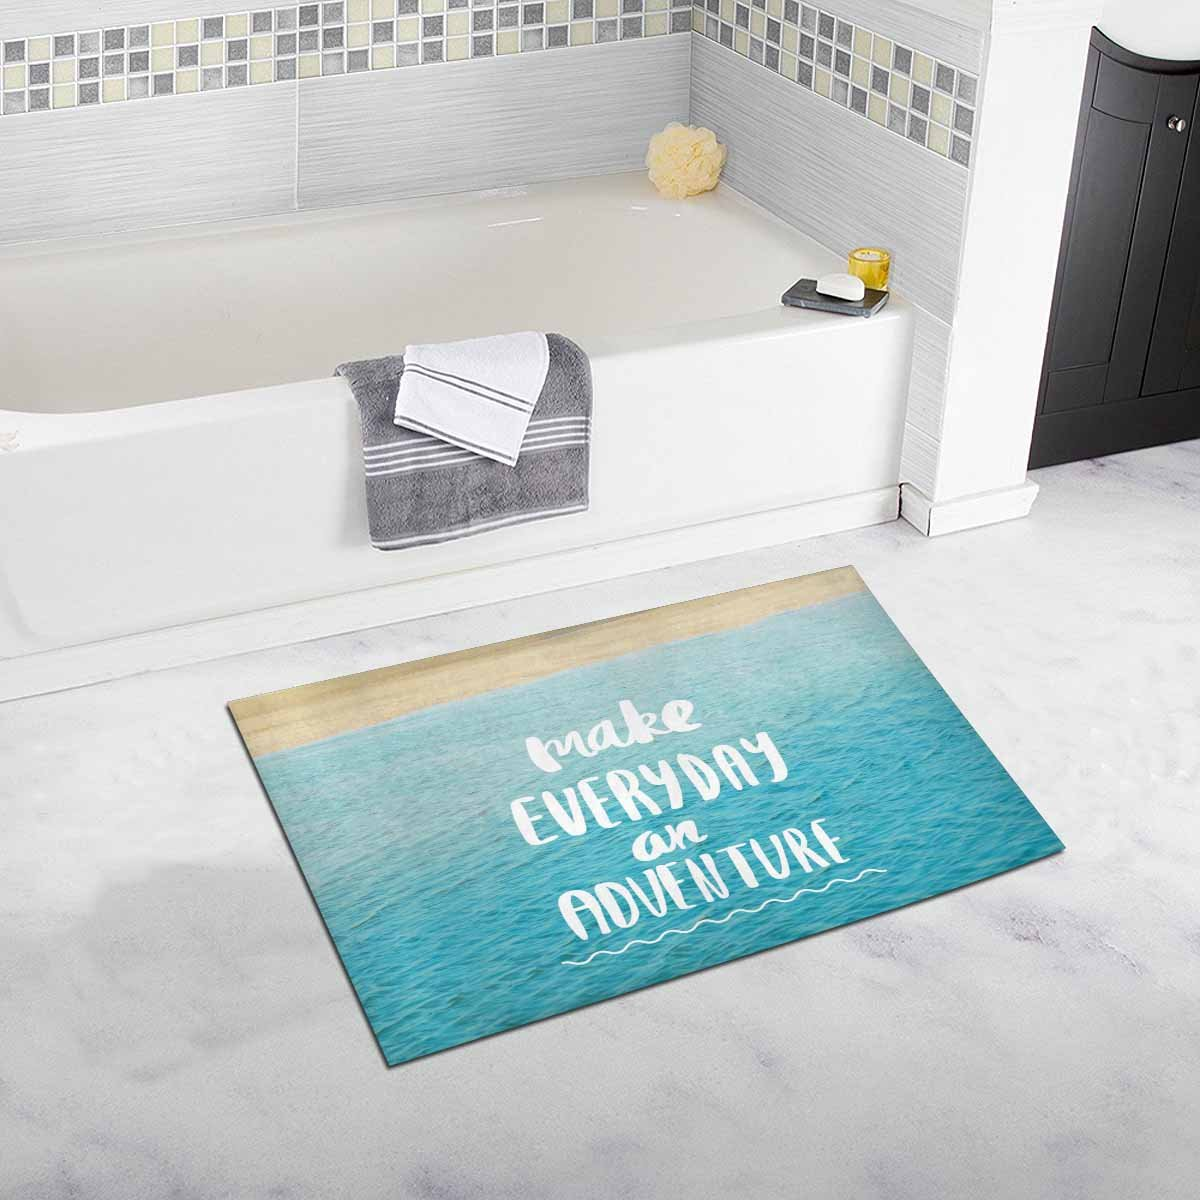 InterestPrint Inspirational Quote On Blue Ocean Sea Make Everyday an Adventure Home Decor Non Slip Bath Rug Mats Absorbent Shower Rug for Bathroom Tub Bedroom Large Size 20 x 32 Inches